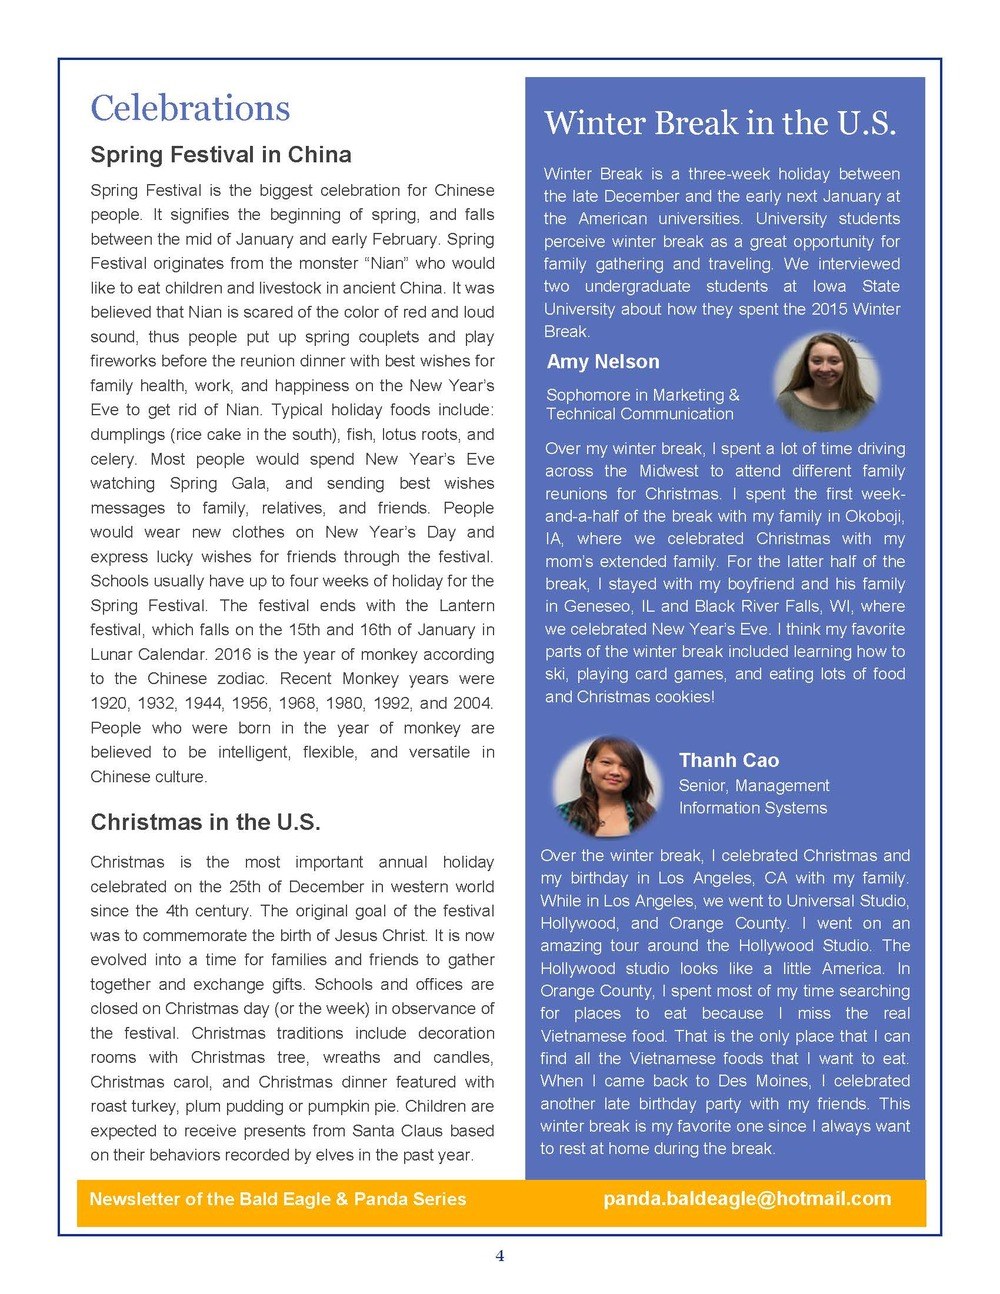 Bald Eagle & Panda Newsletter Issue 5_Page_4.jpg